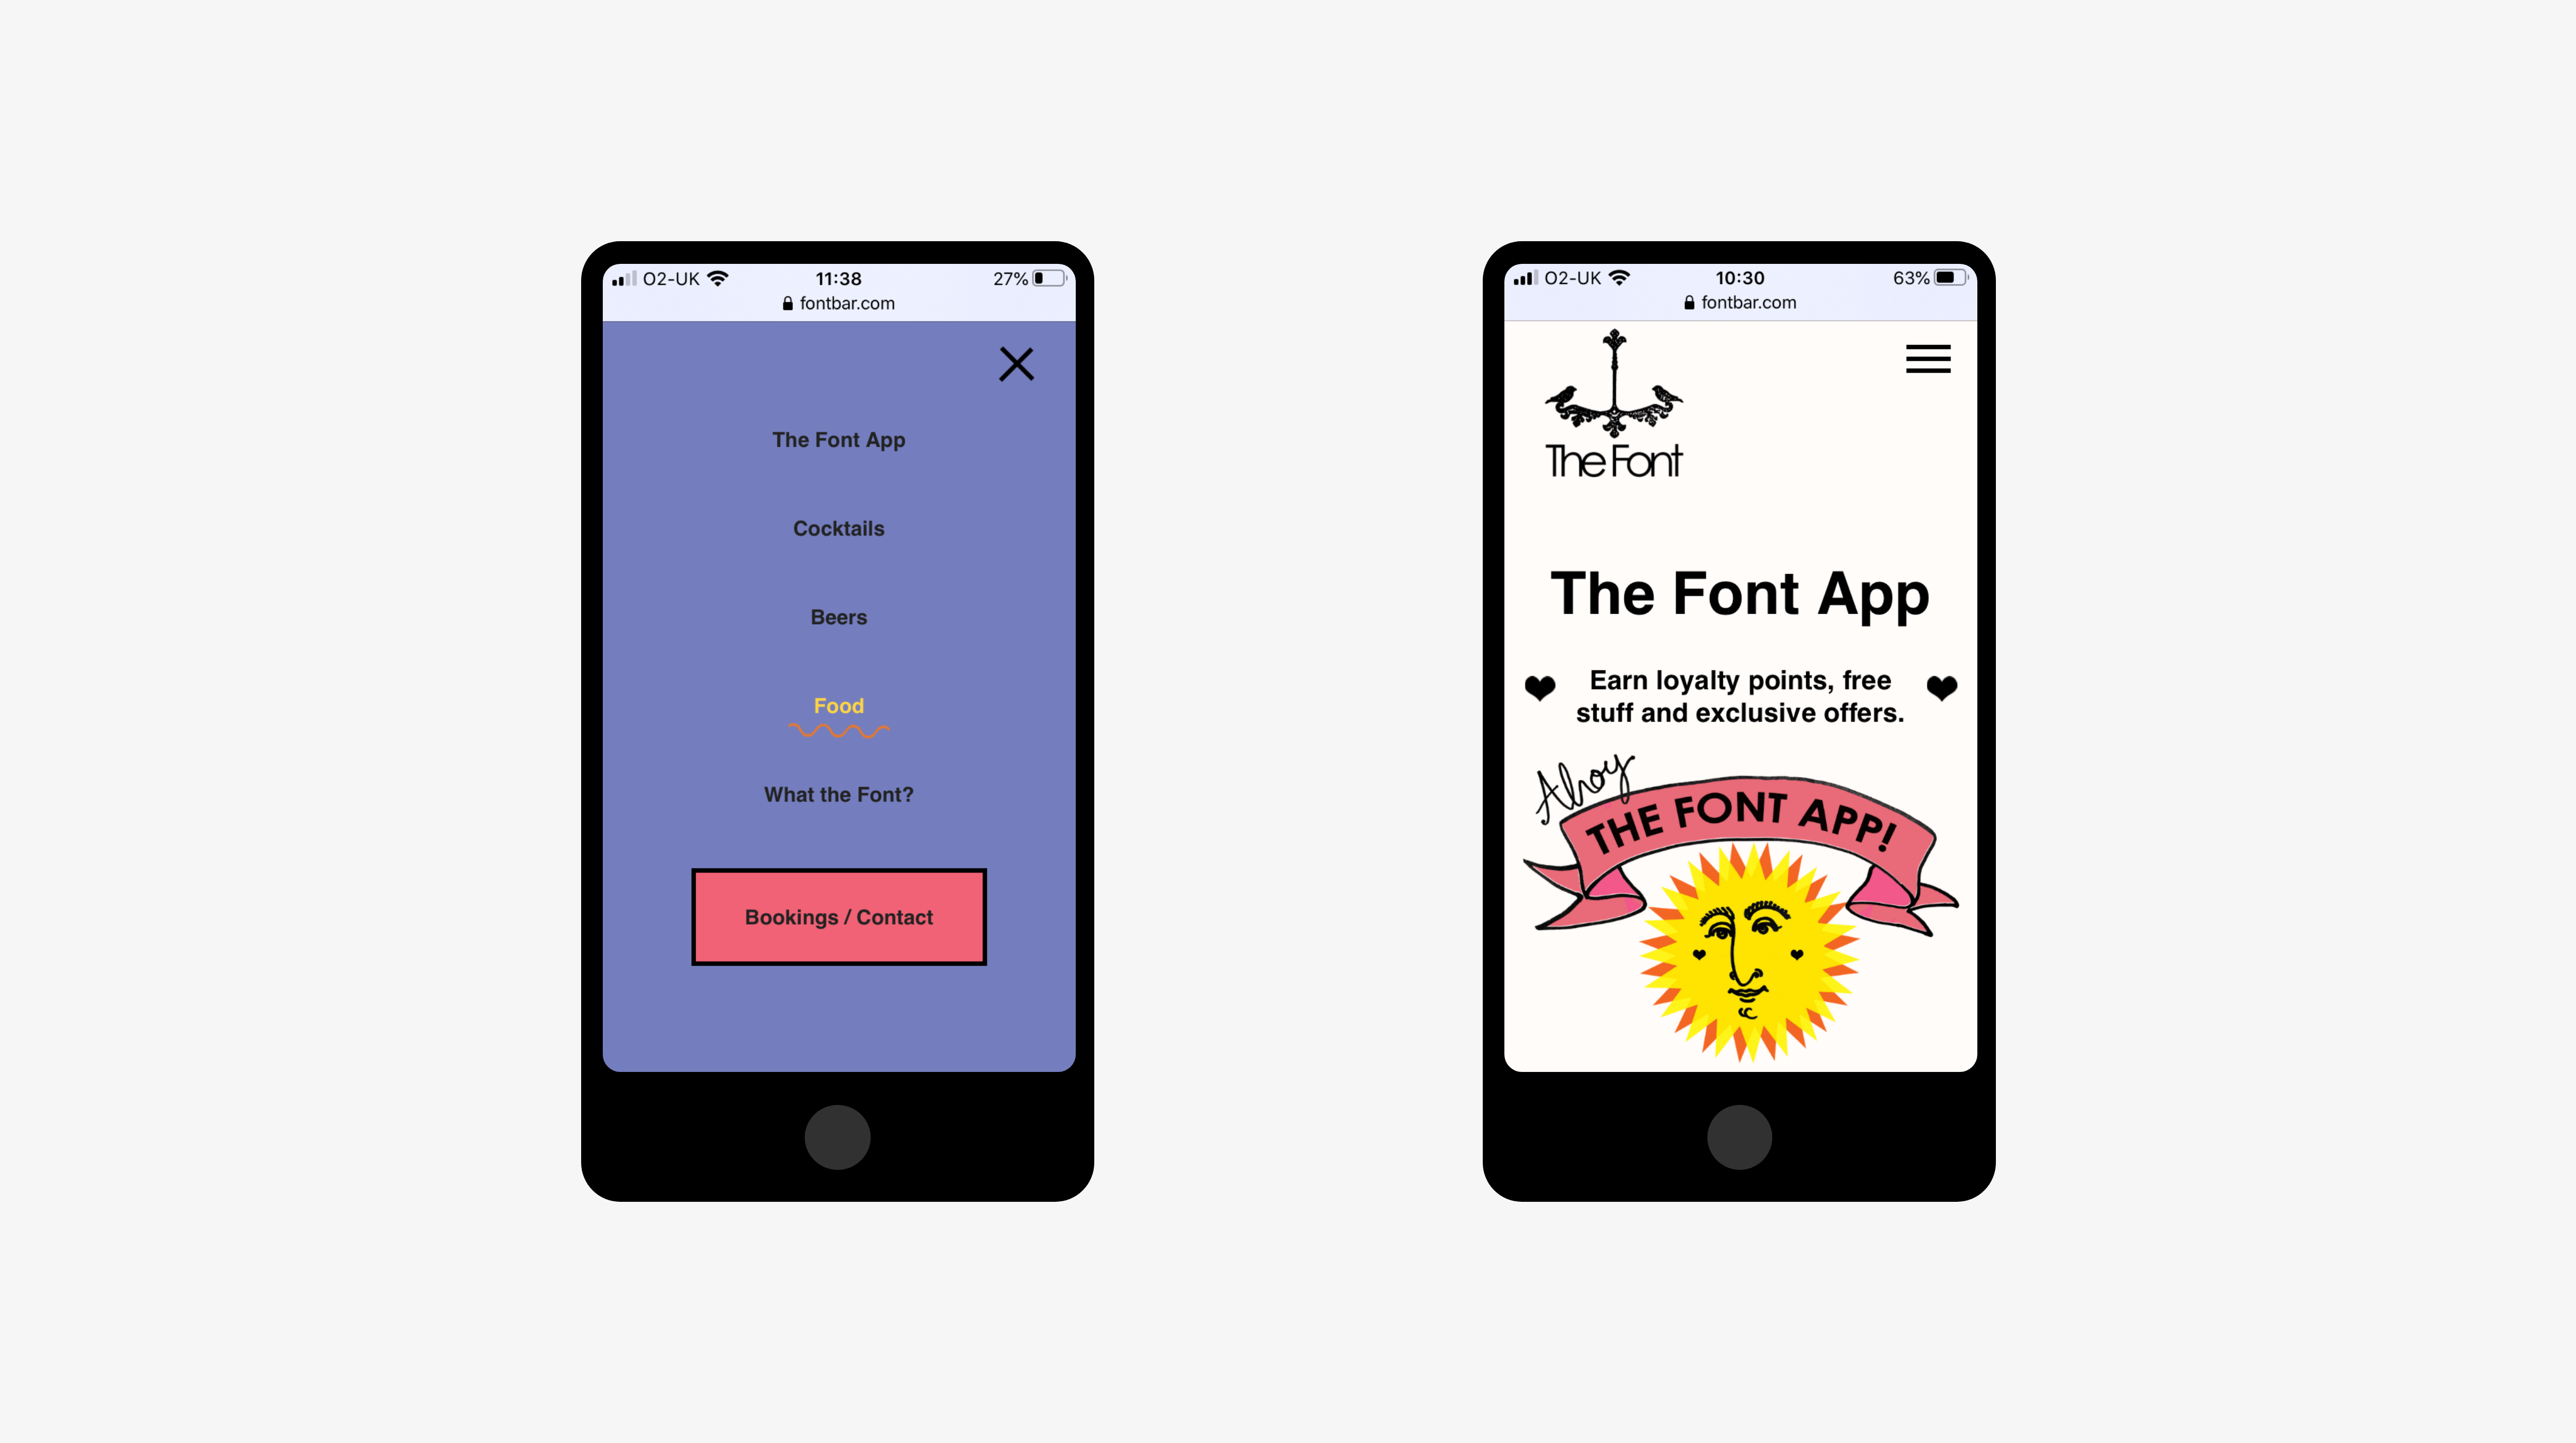 Mobile view - navigation and The Font App page